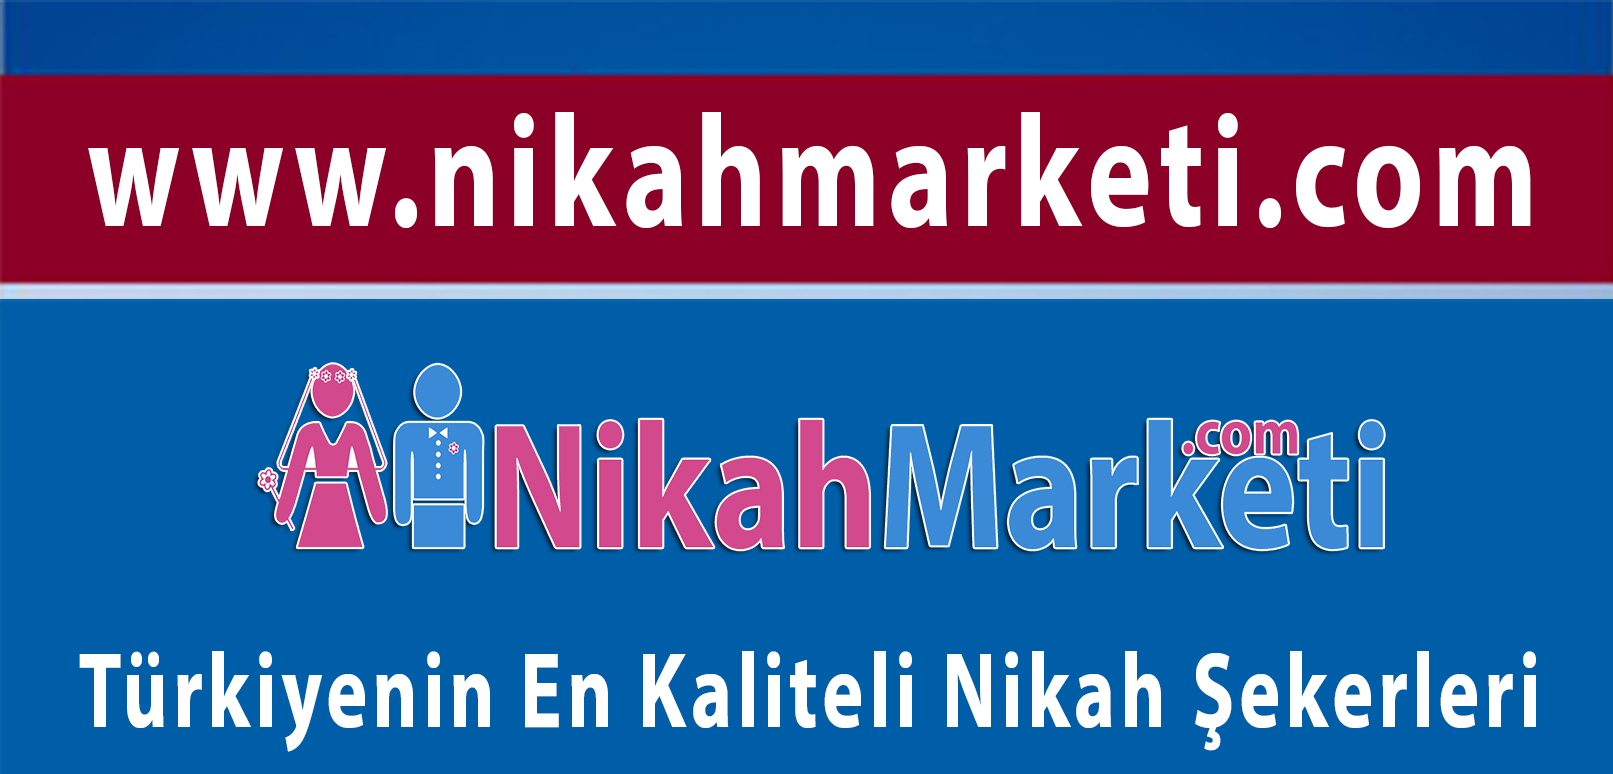 nikahmarketi